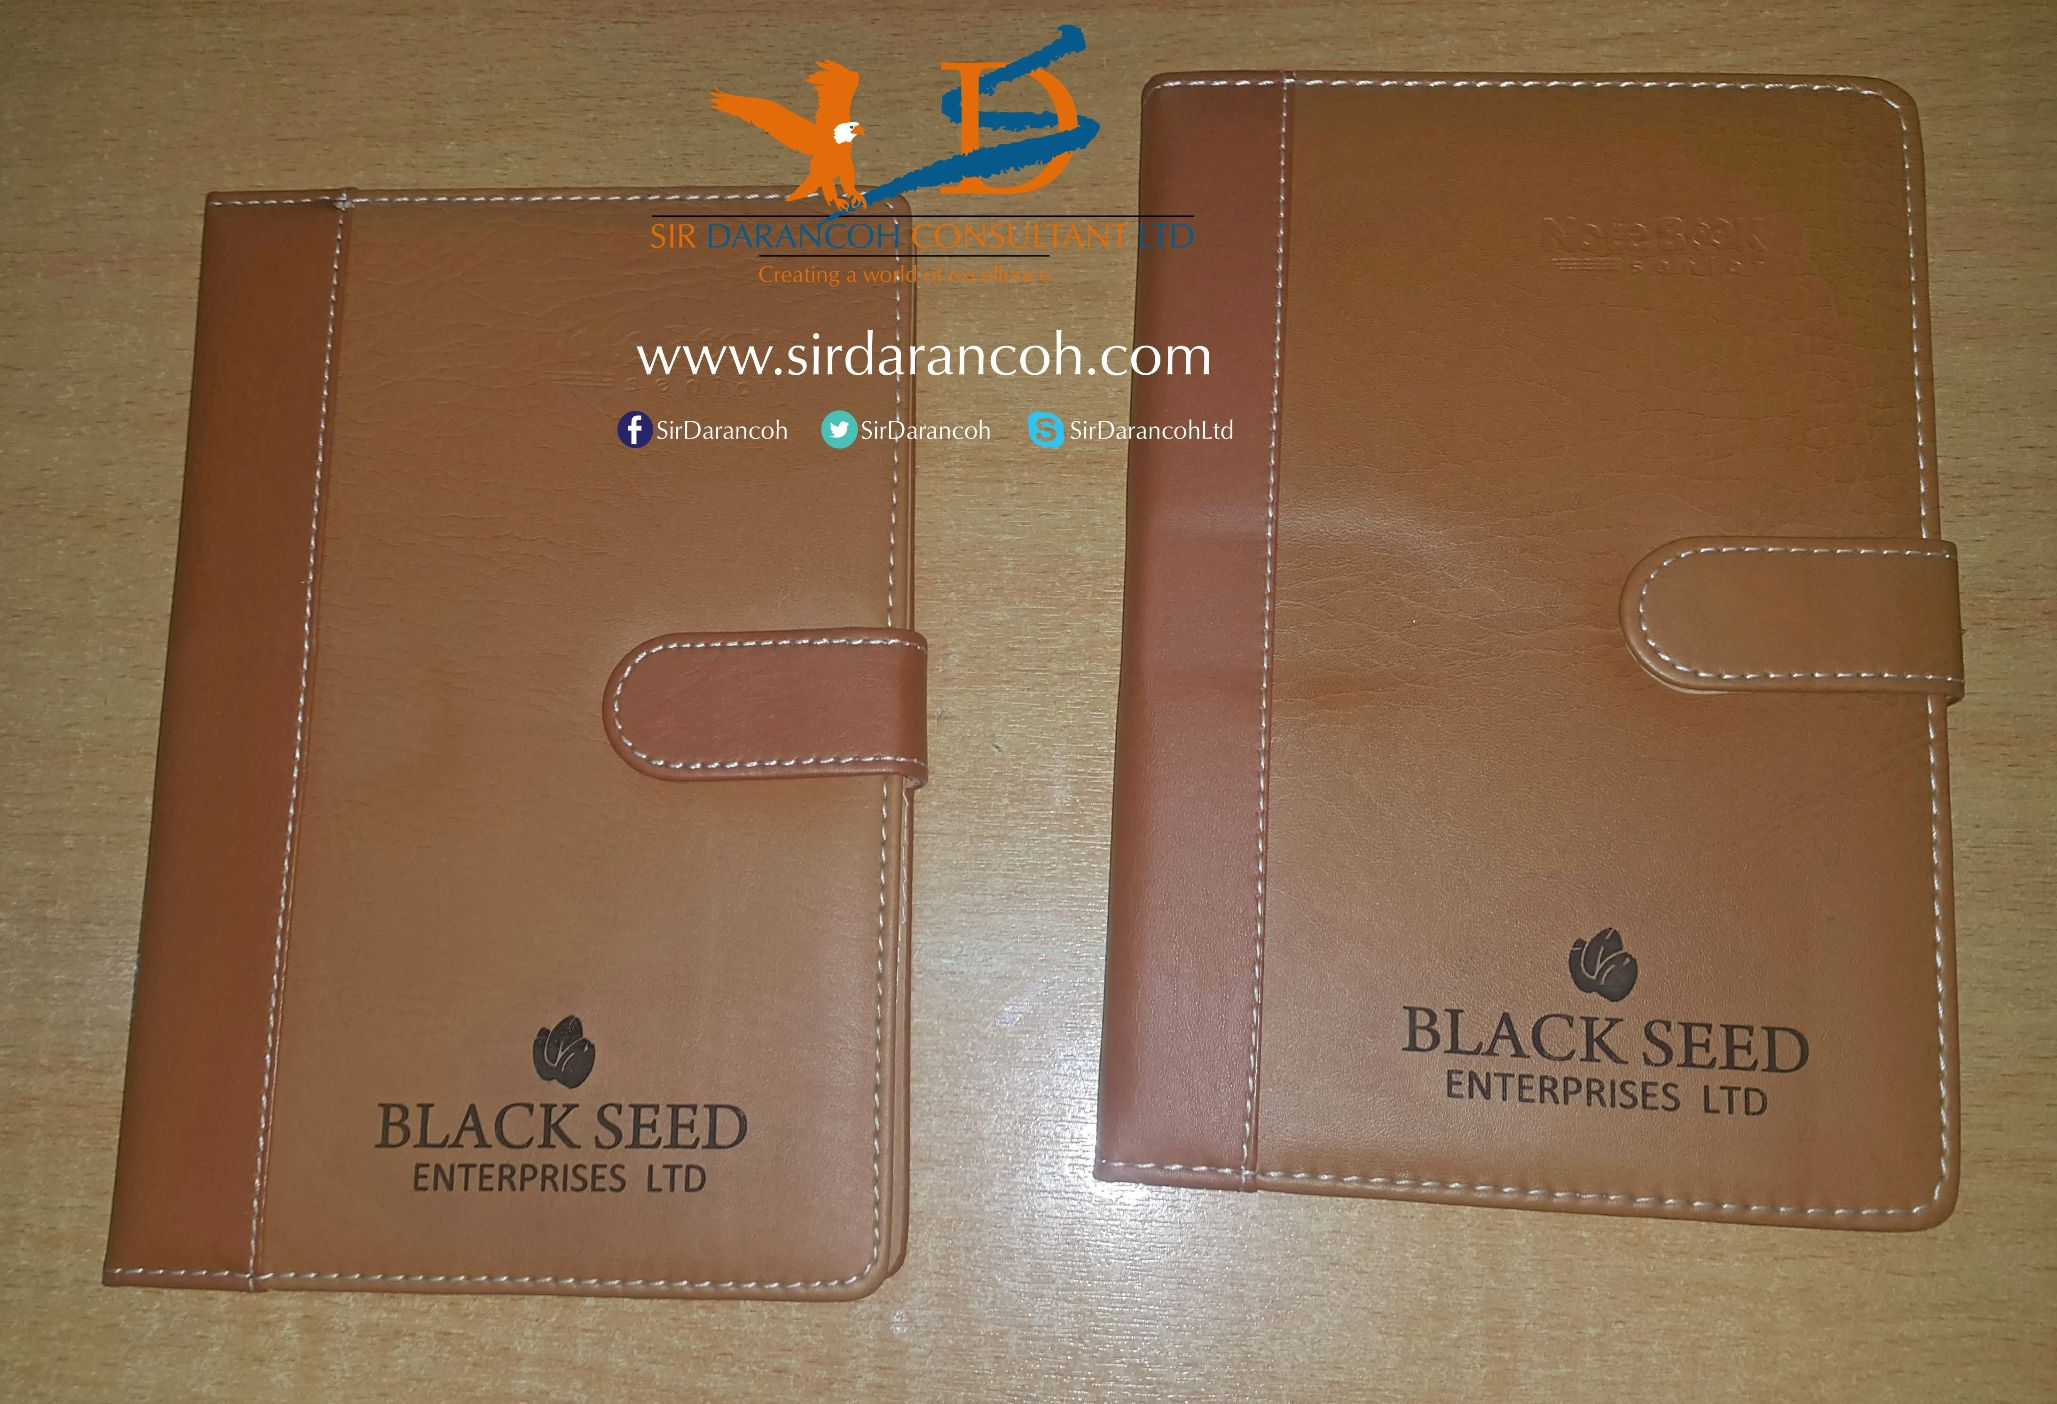 Black Seed Enterprises